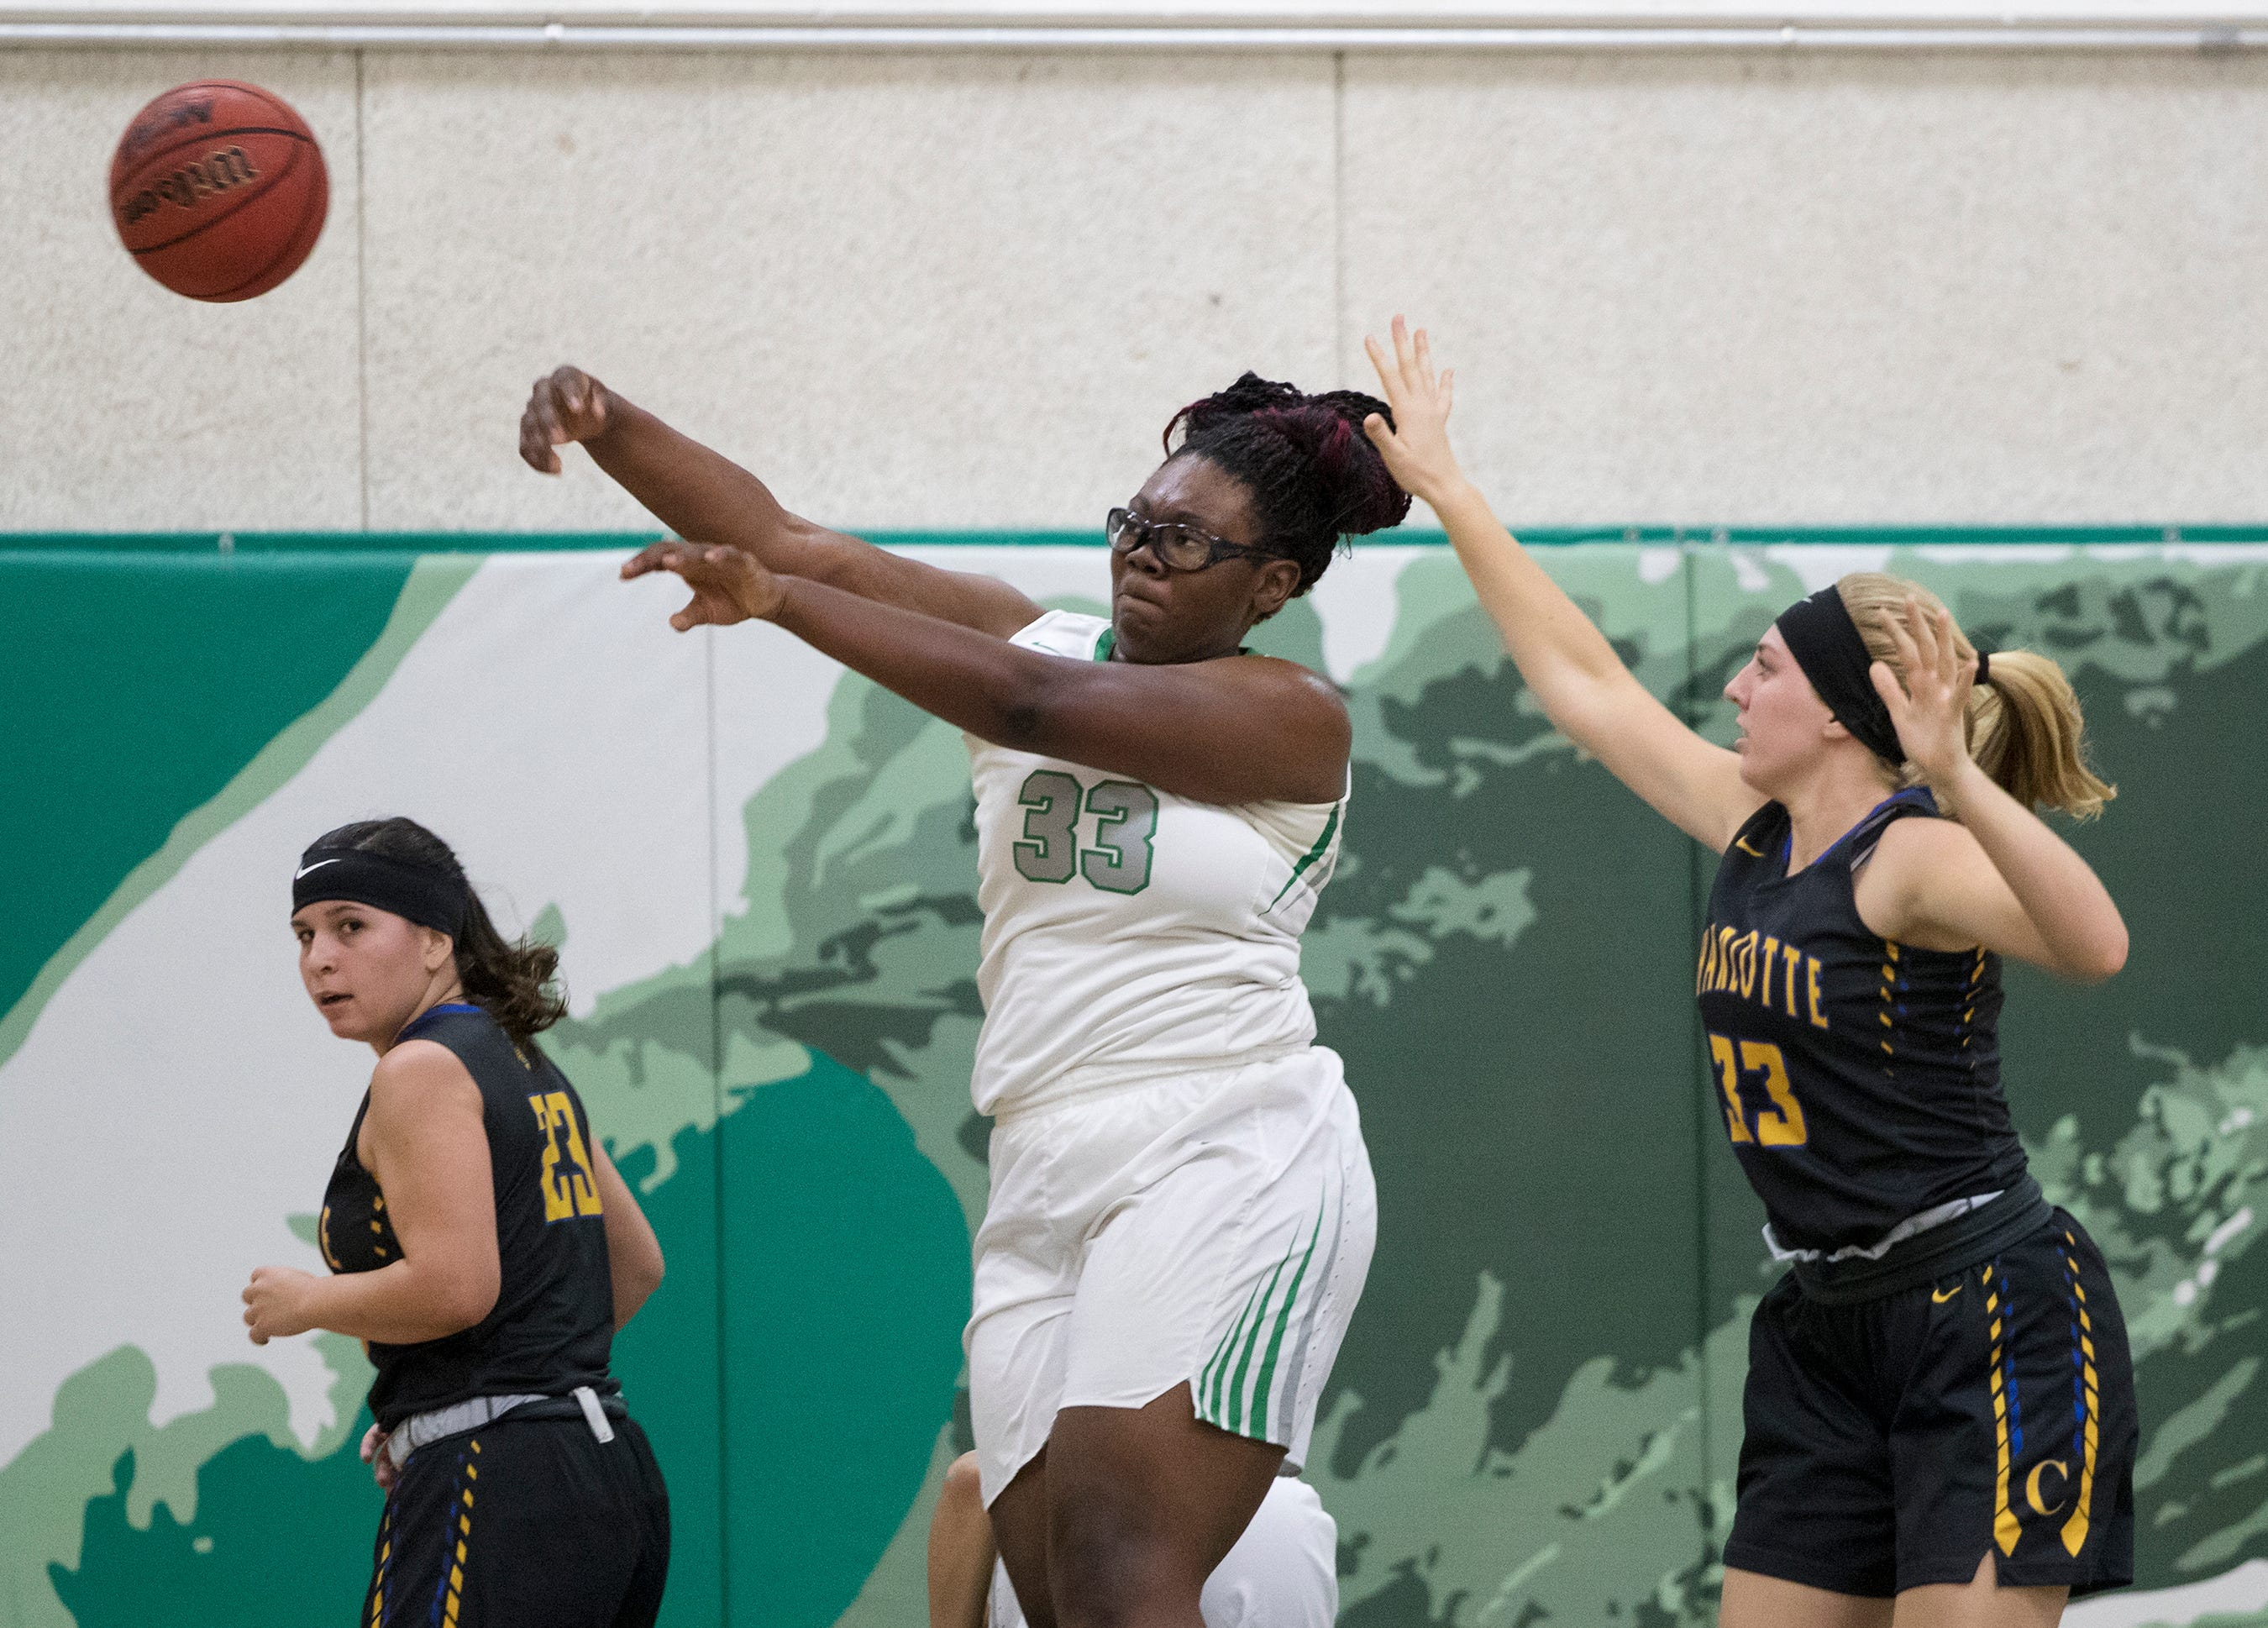 Sophomore Chaniya Clark and the Fort Myers High School girls basketball team seek their fourth straight state championship in Lakeland this weekend. The Green Wave will face Ponte Vedra Nease in a Class 7A semifinal at noon Friday.